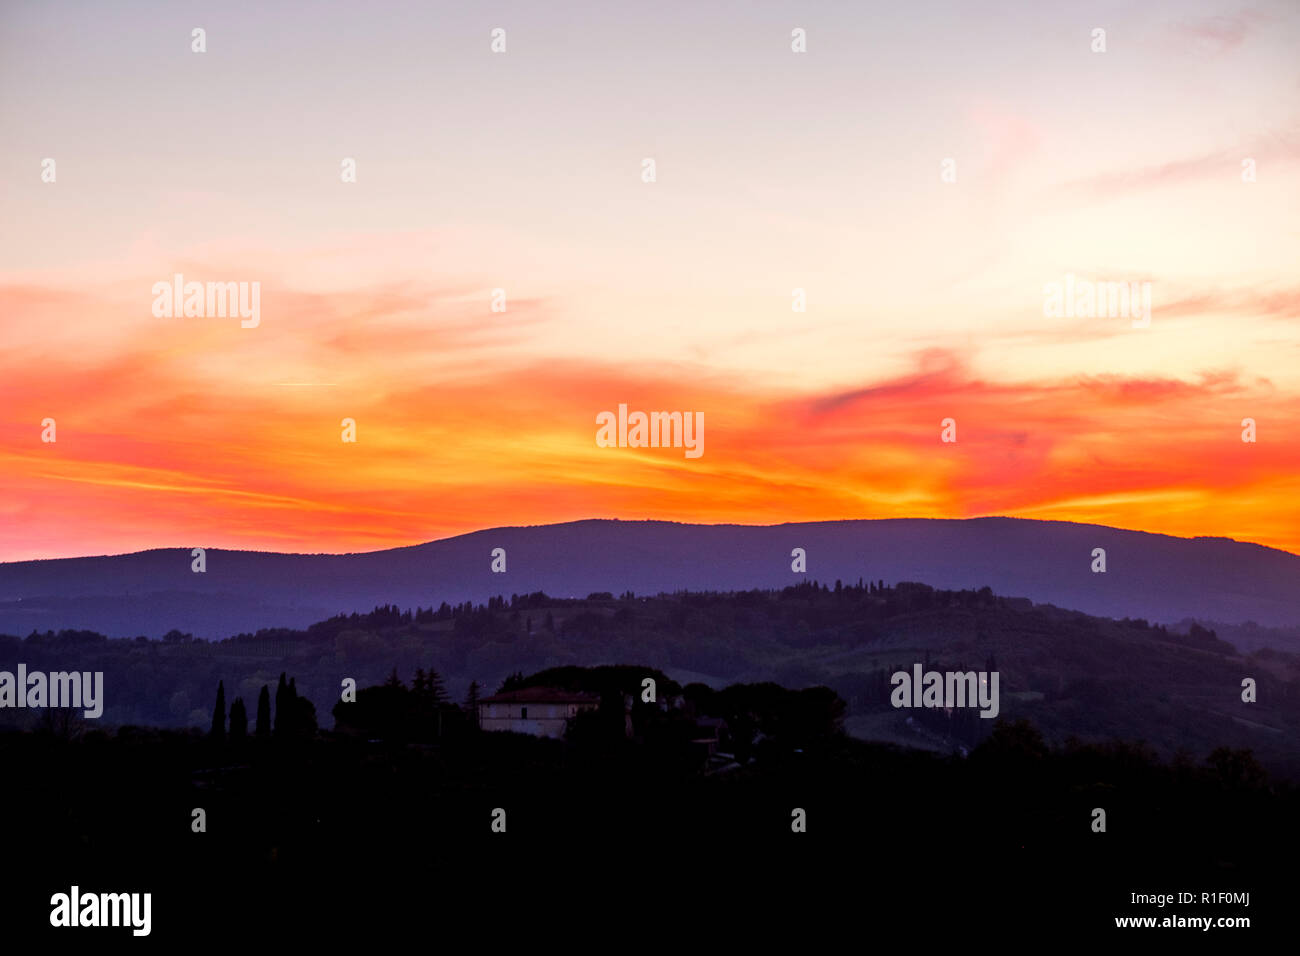 Amazing coloured sunset in Tuscany Italy with red clouds and blue ground during the blue hours. Beautiful landscape with colors and feeling - Stock Image